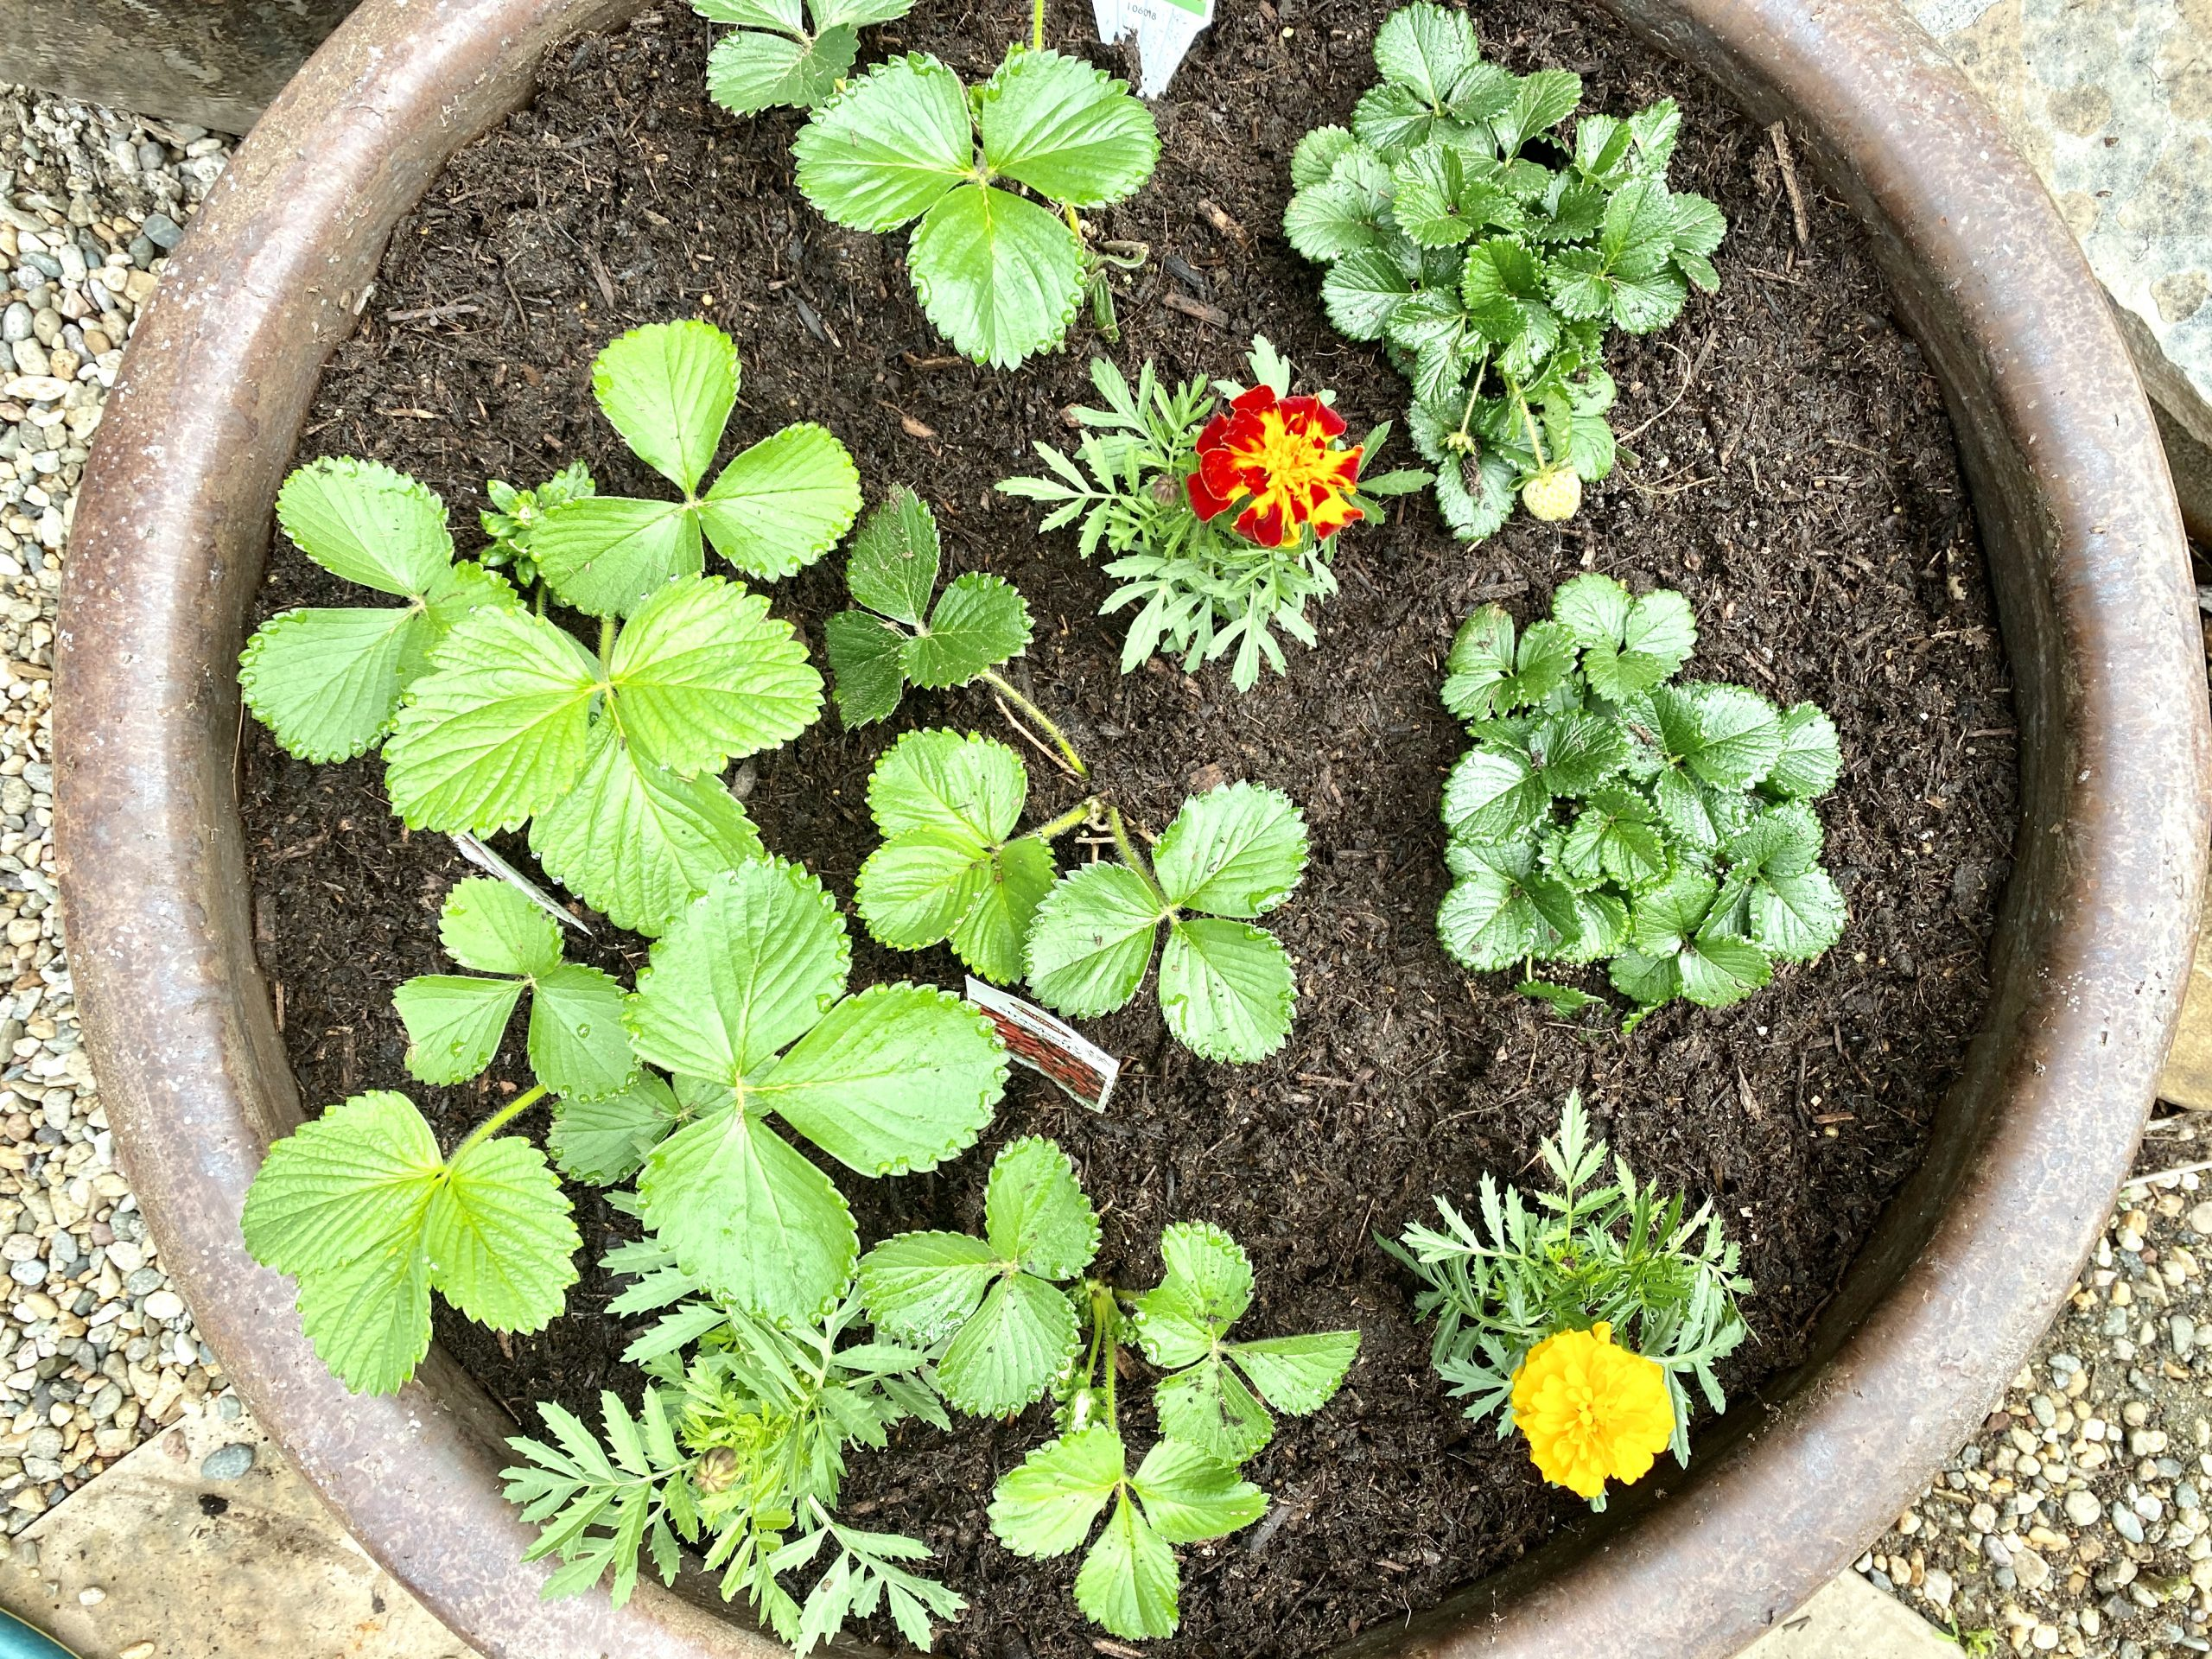 strawberry plants newly planted in a round pot with marigolds